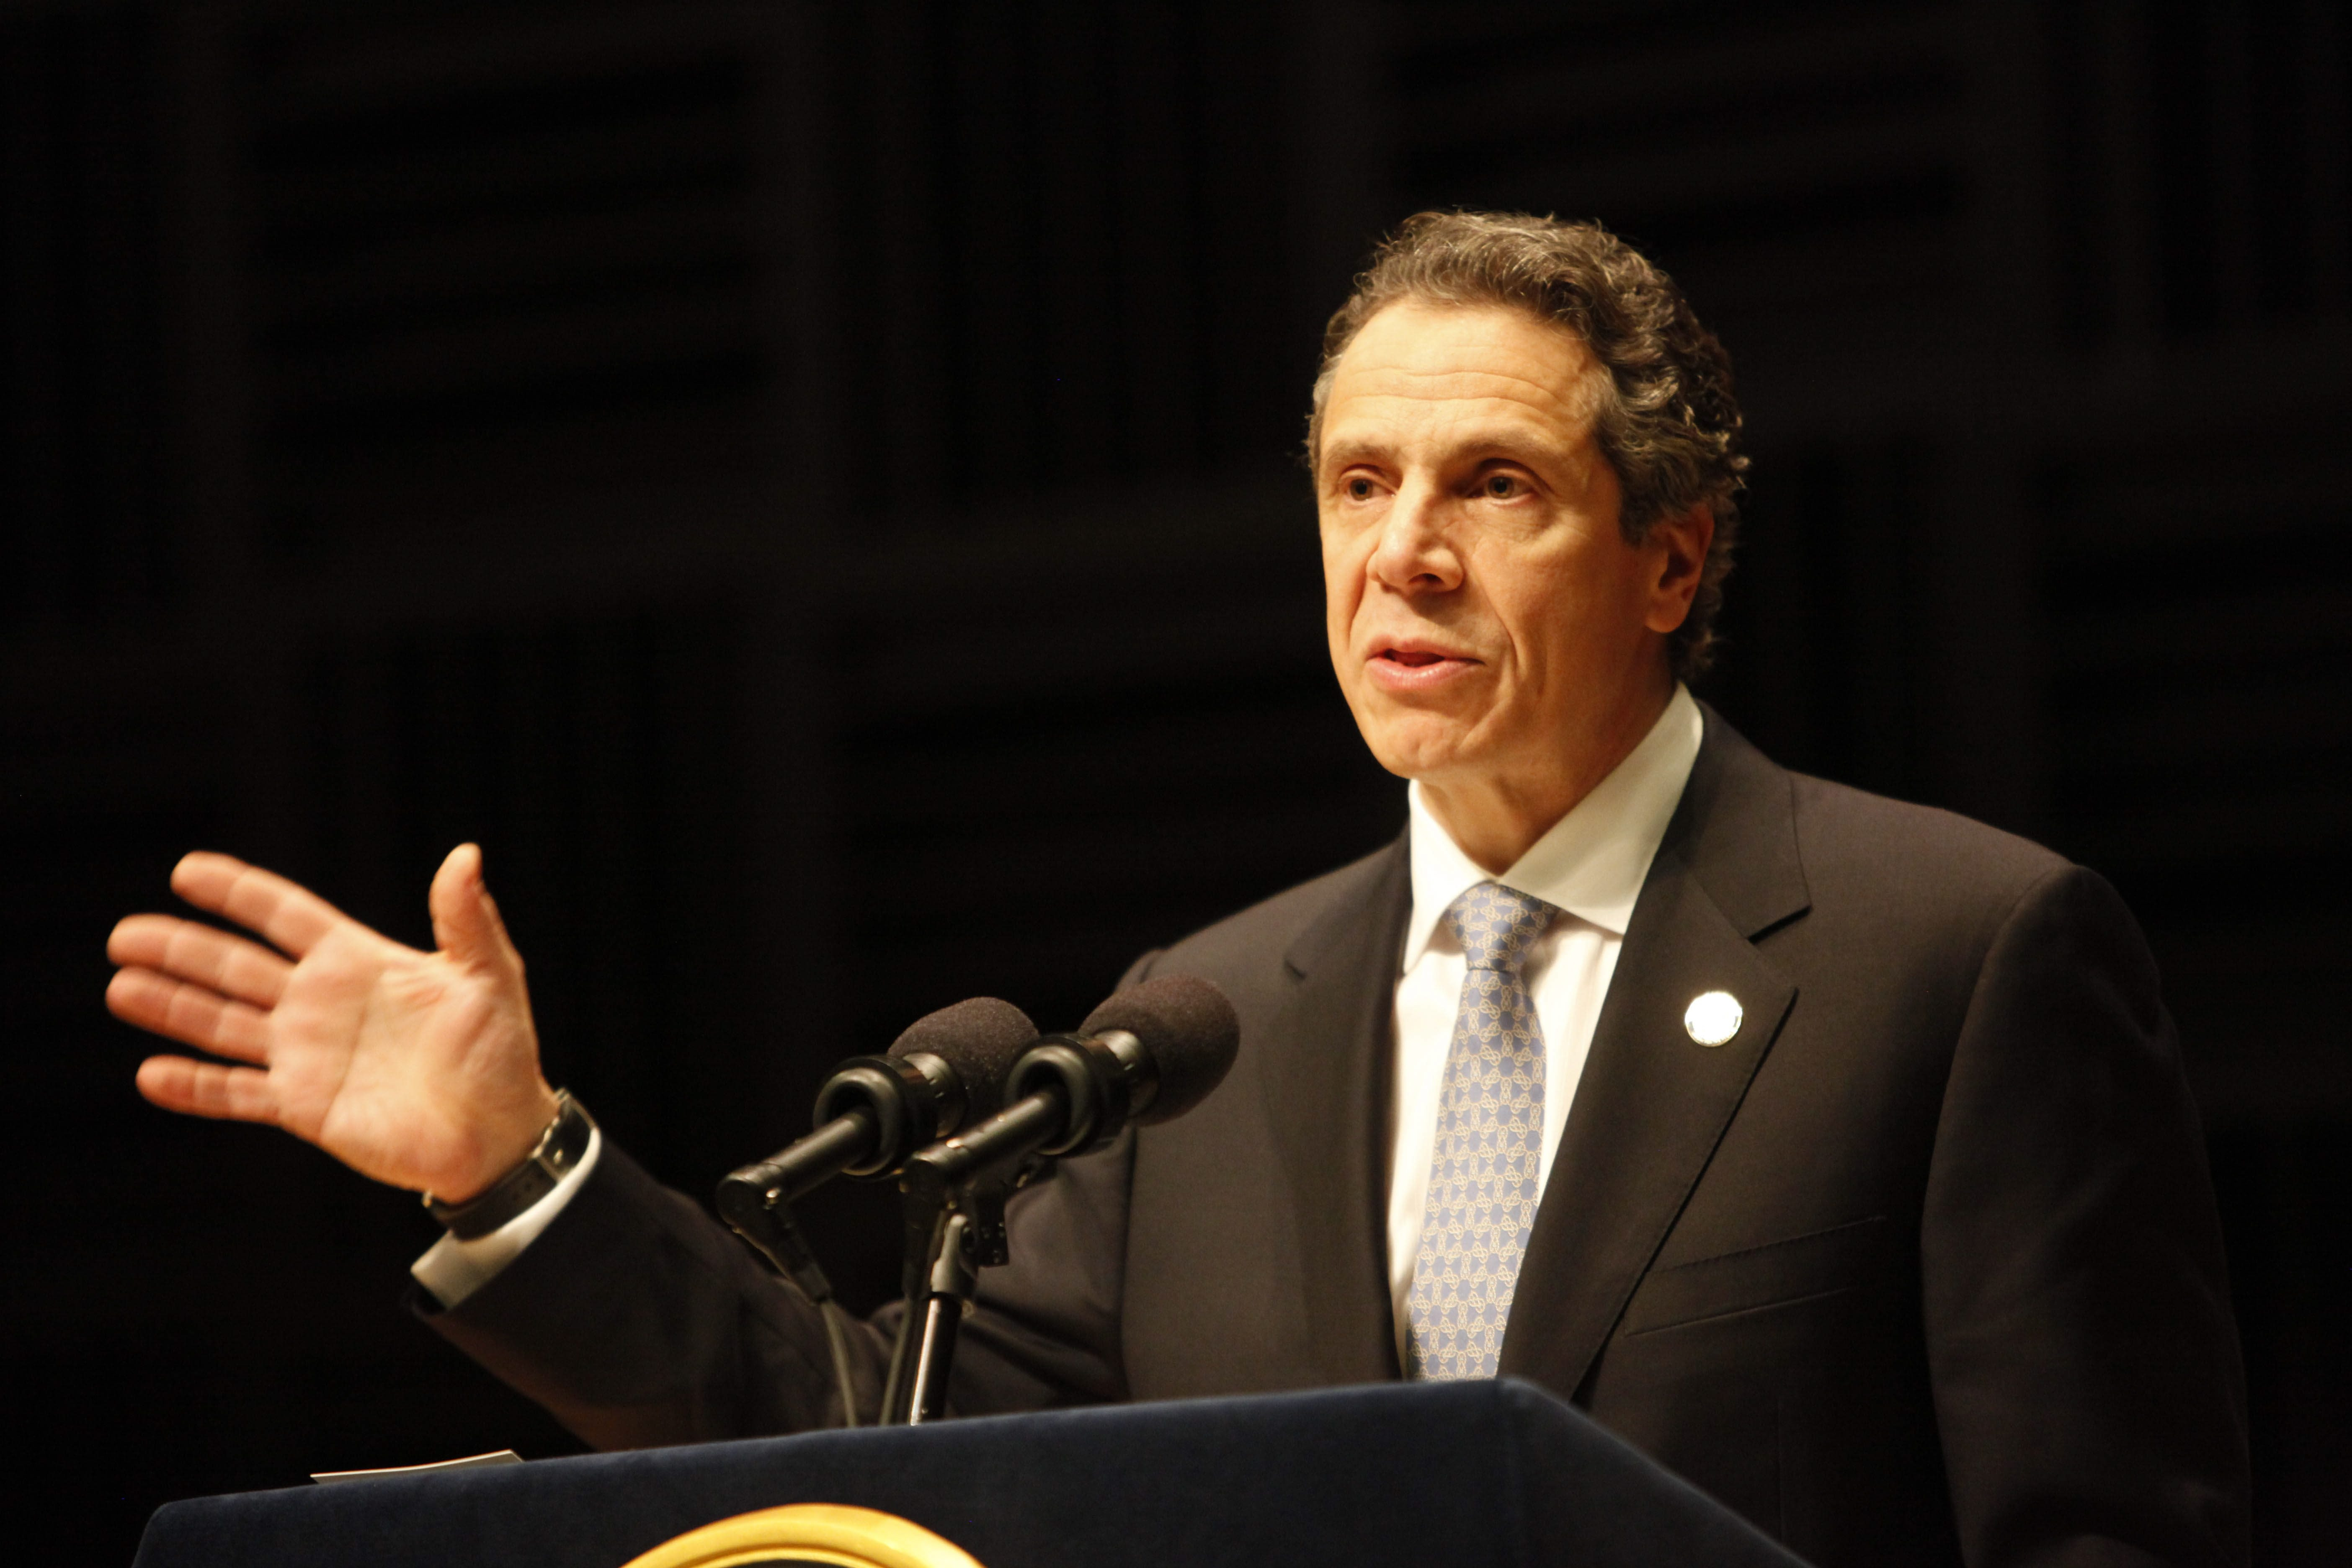 'I think the Bills are a good investment for Western New York and an important part of Western New York. But we want to make sure the relationships work both ways, and we need the commitment and the downside protection.'    - Gov. Andrew M. Cuomo    Derek Gee/Buffalo News